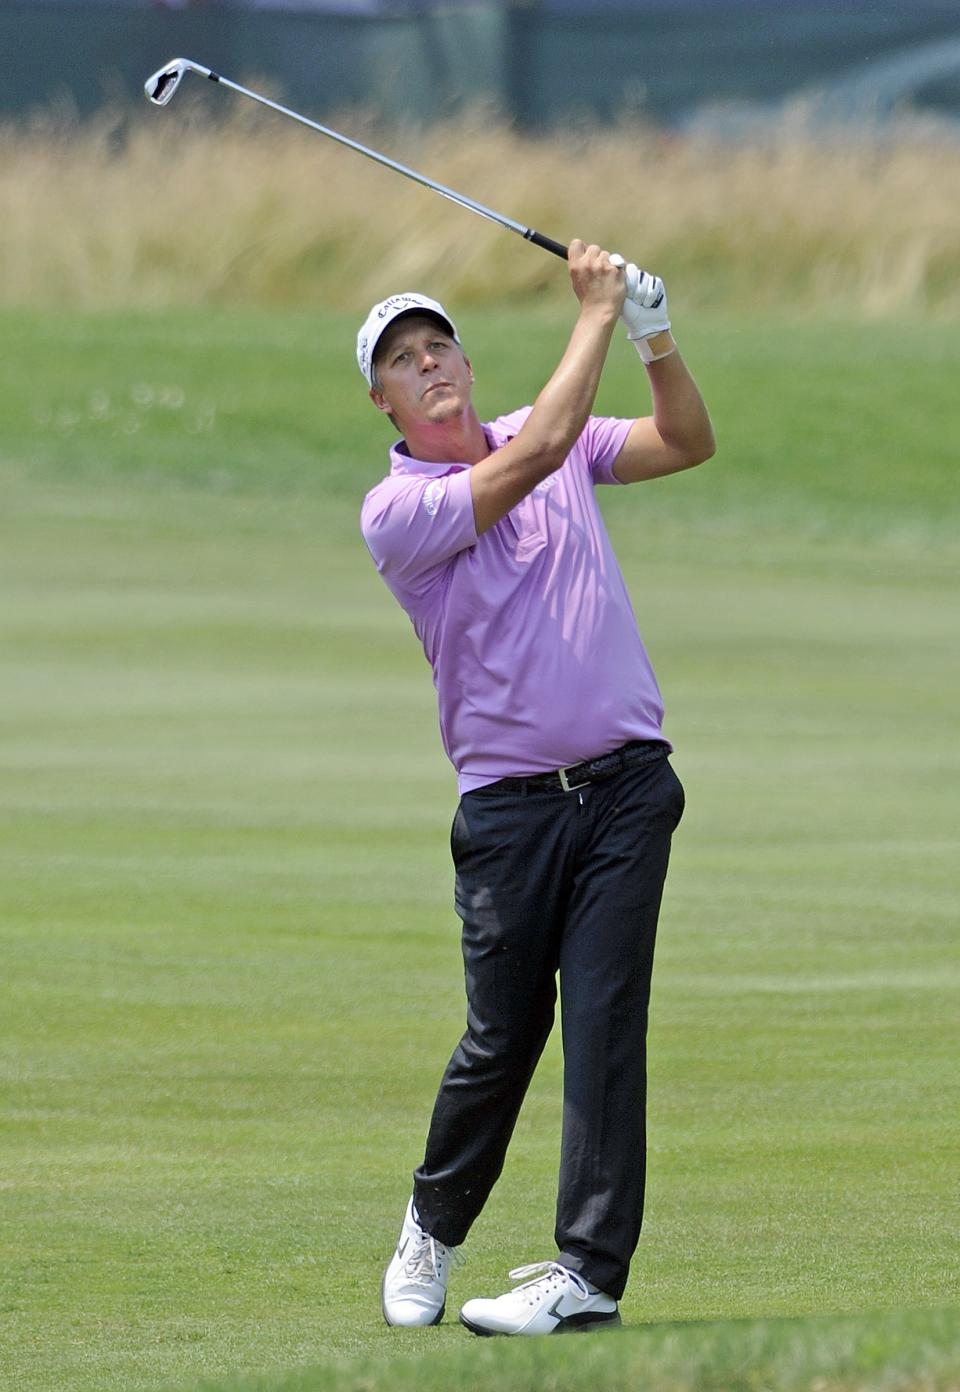 Frederik Jacobsen, of Sweden, watches his approach shot on the ninth hole during the second round of the Travelers Championship golf tournament in Cromwell, Conn., Friday, June 22, 2012. Jacobsen finish with a two-day score of 9-under-par. (AP Photo/Fred Beckham)